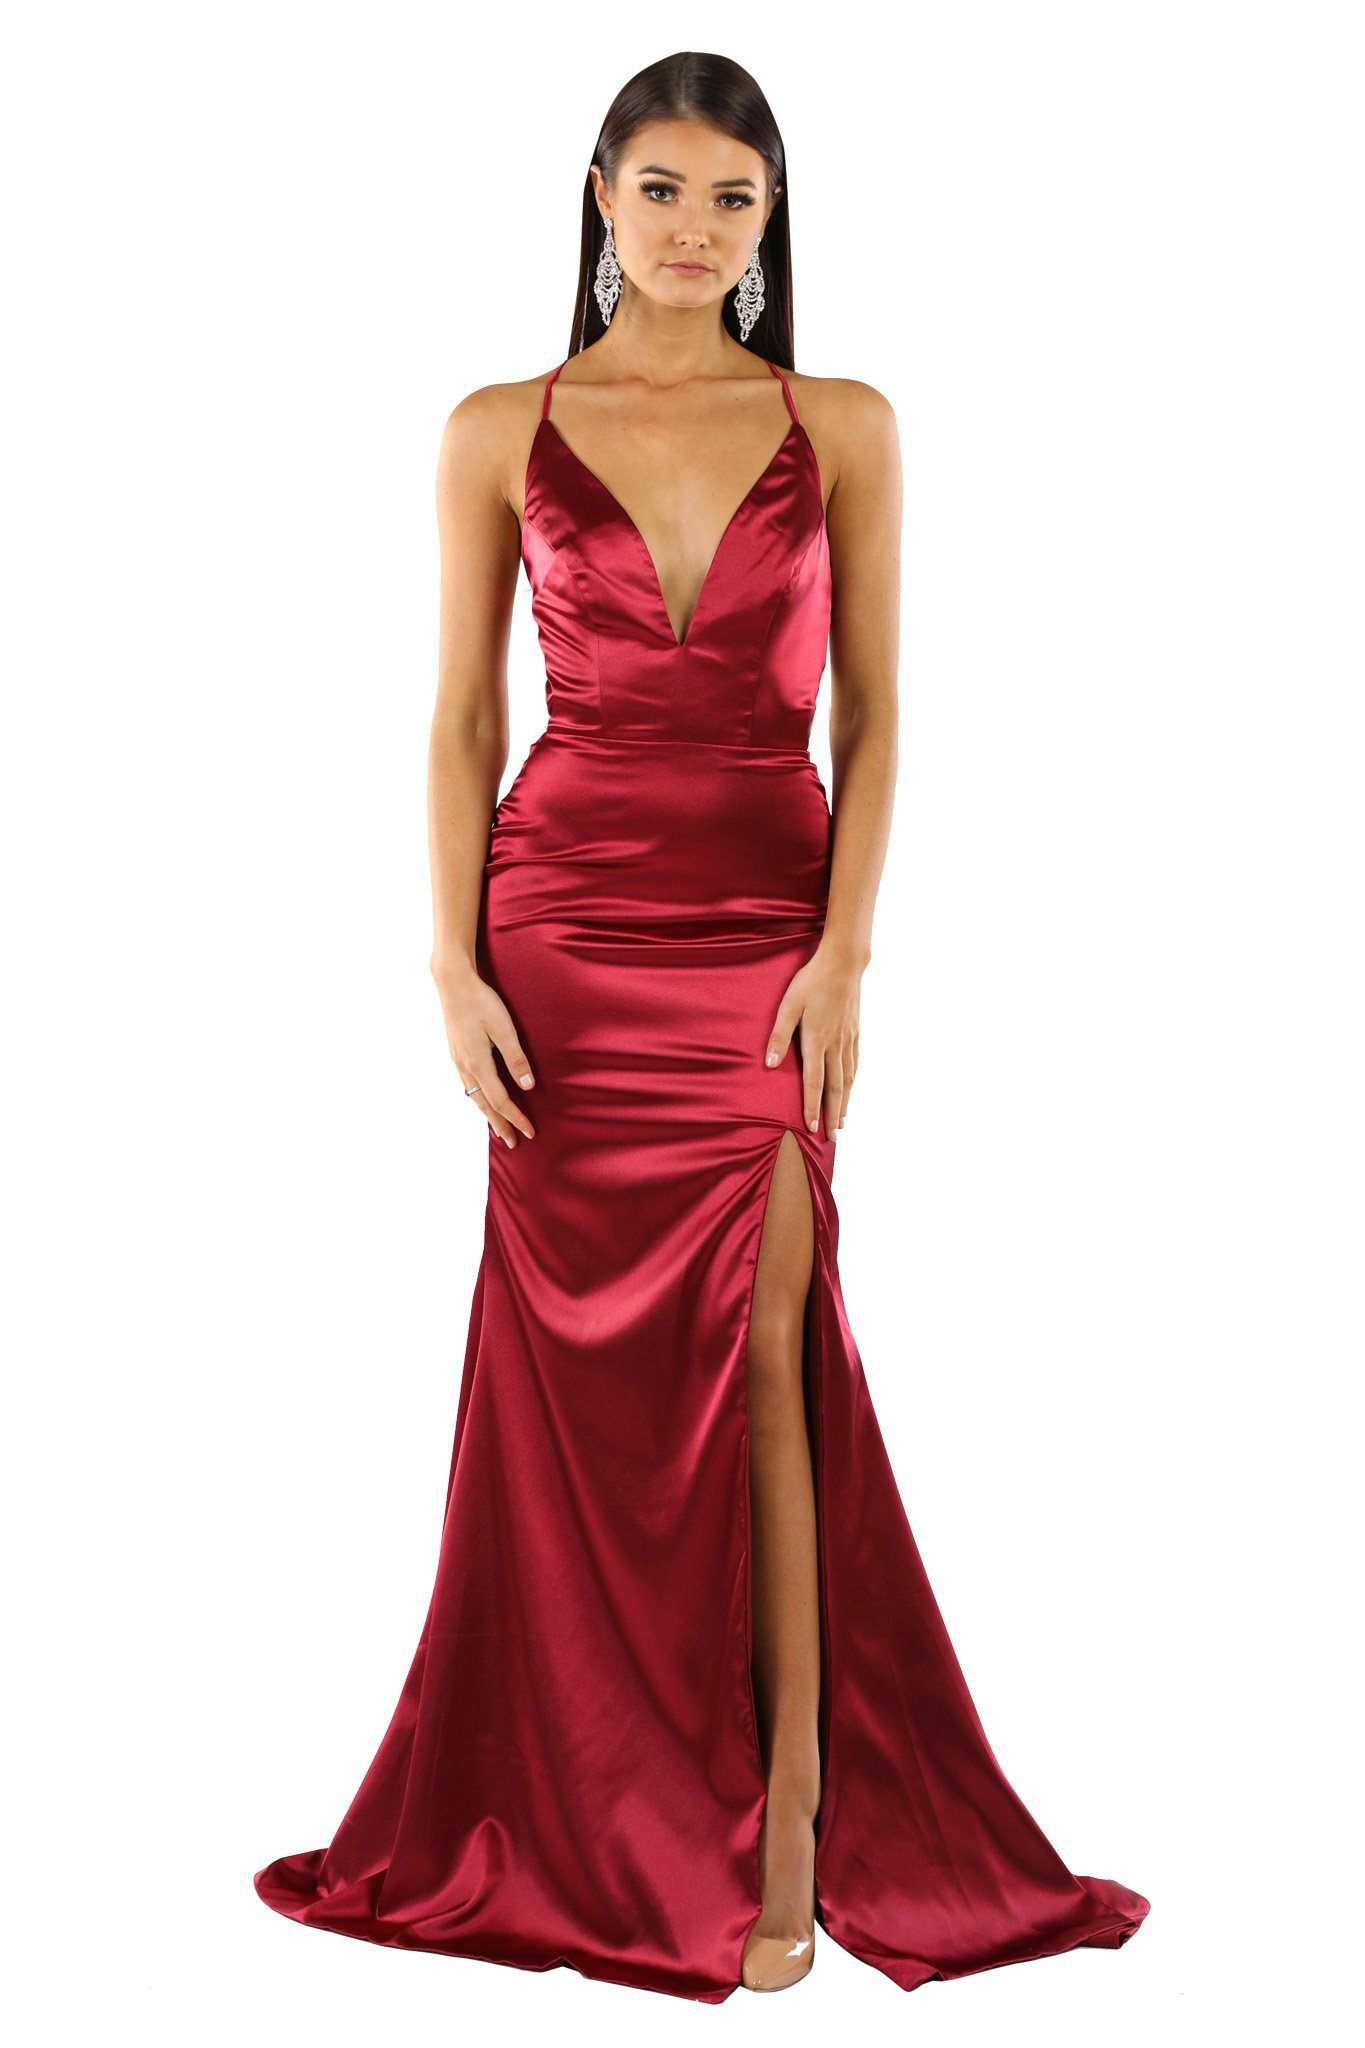 40e67dcc533f ELECTRA Lace Up Back Front Slit Satin Gown - Deep Red | Formal ...